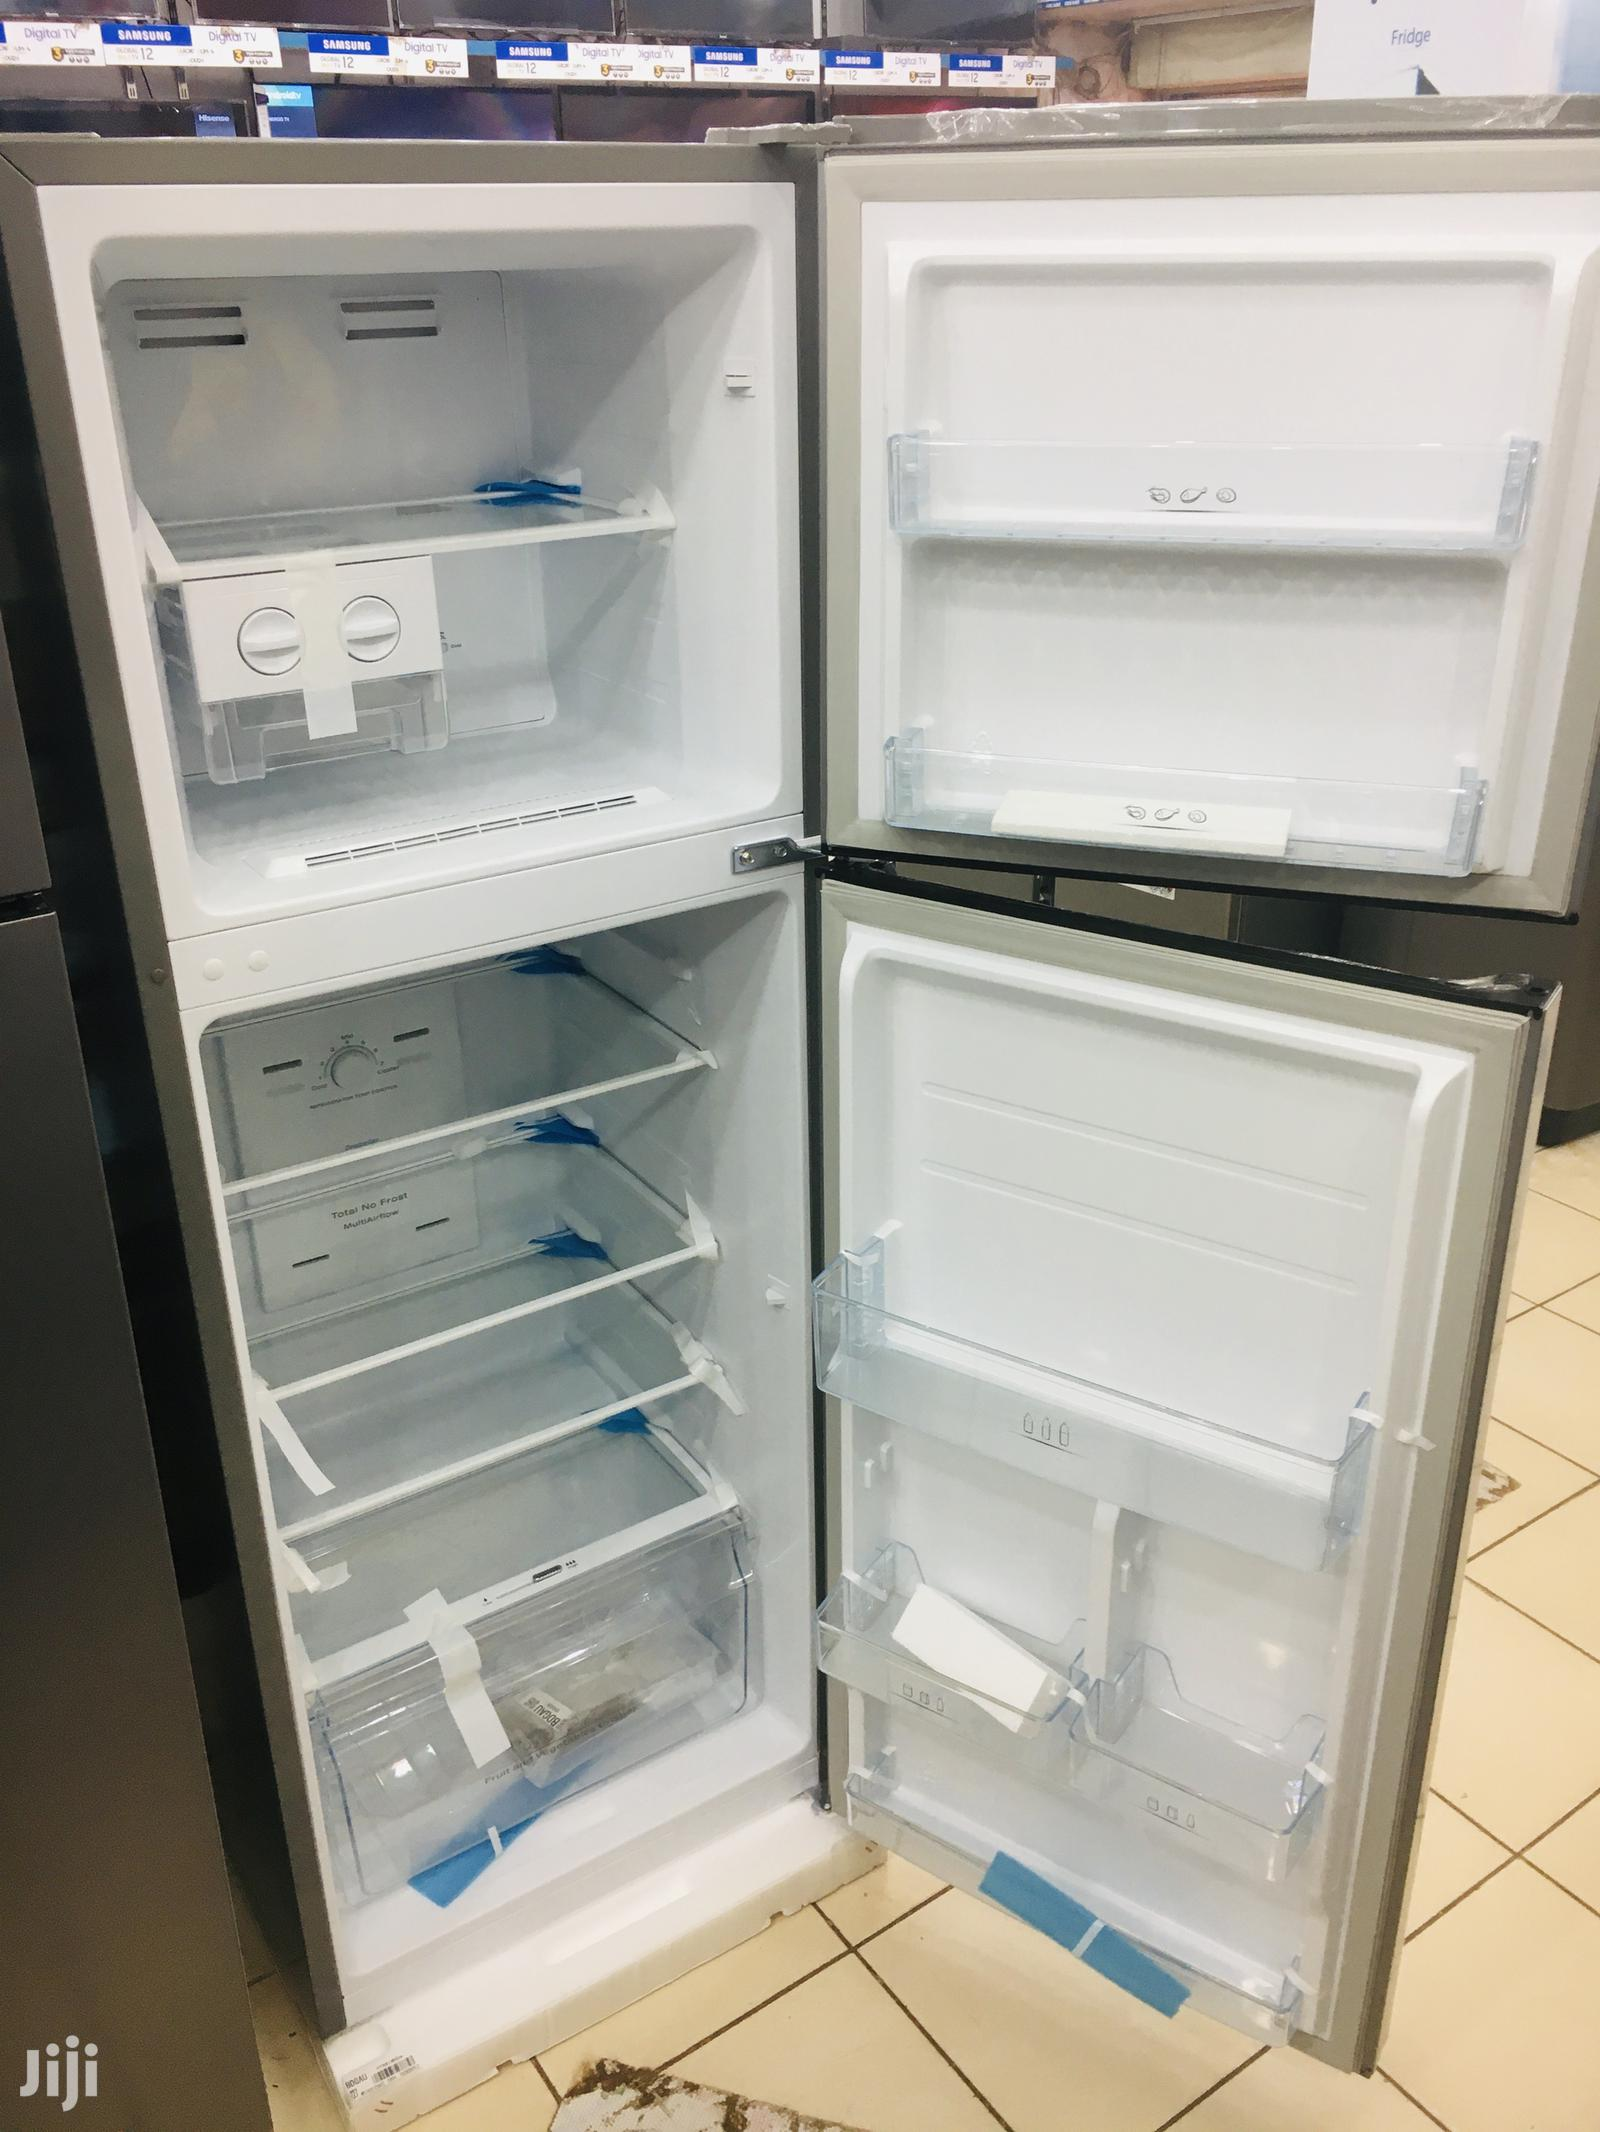 Hisense 295 Litres Double Door Refrigerator Frost Free | Kitchen Appliances for sale in Kampala, Central Region, Uganda